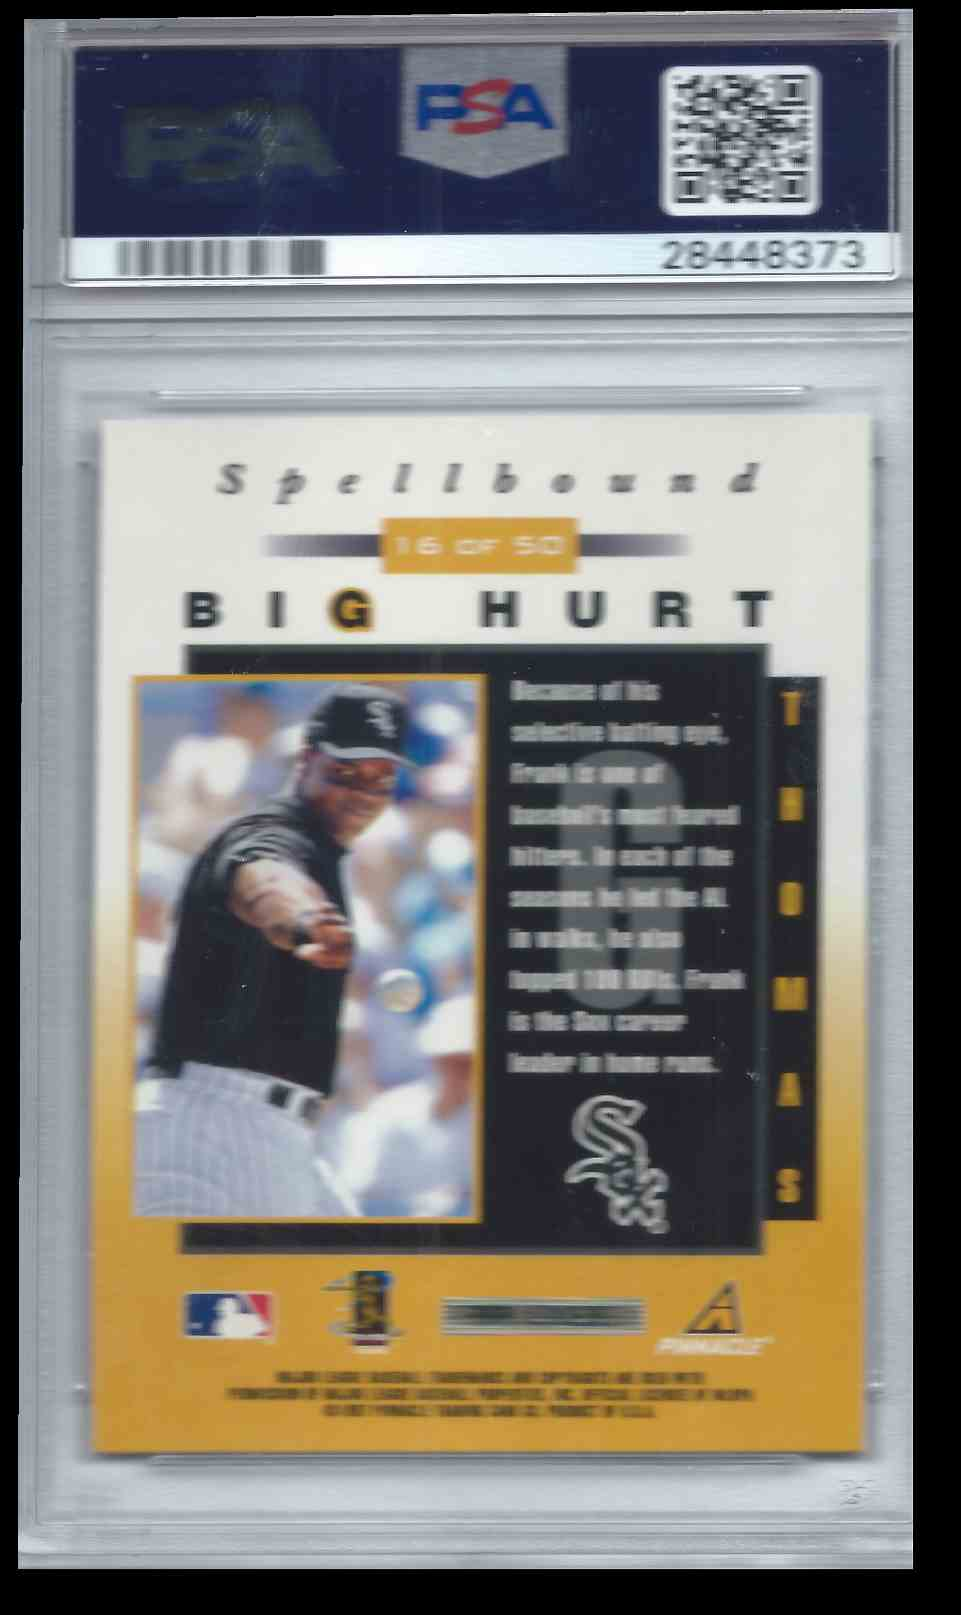 1998 Pinnacle Spellbound Big Hurt Frank Thomas #16 card back image